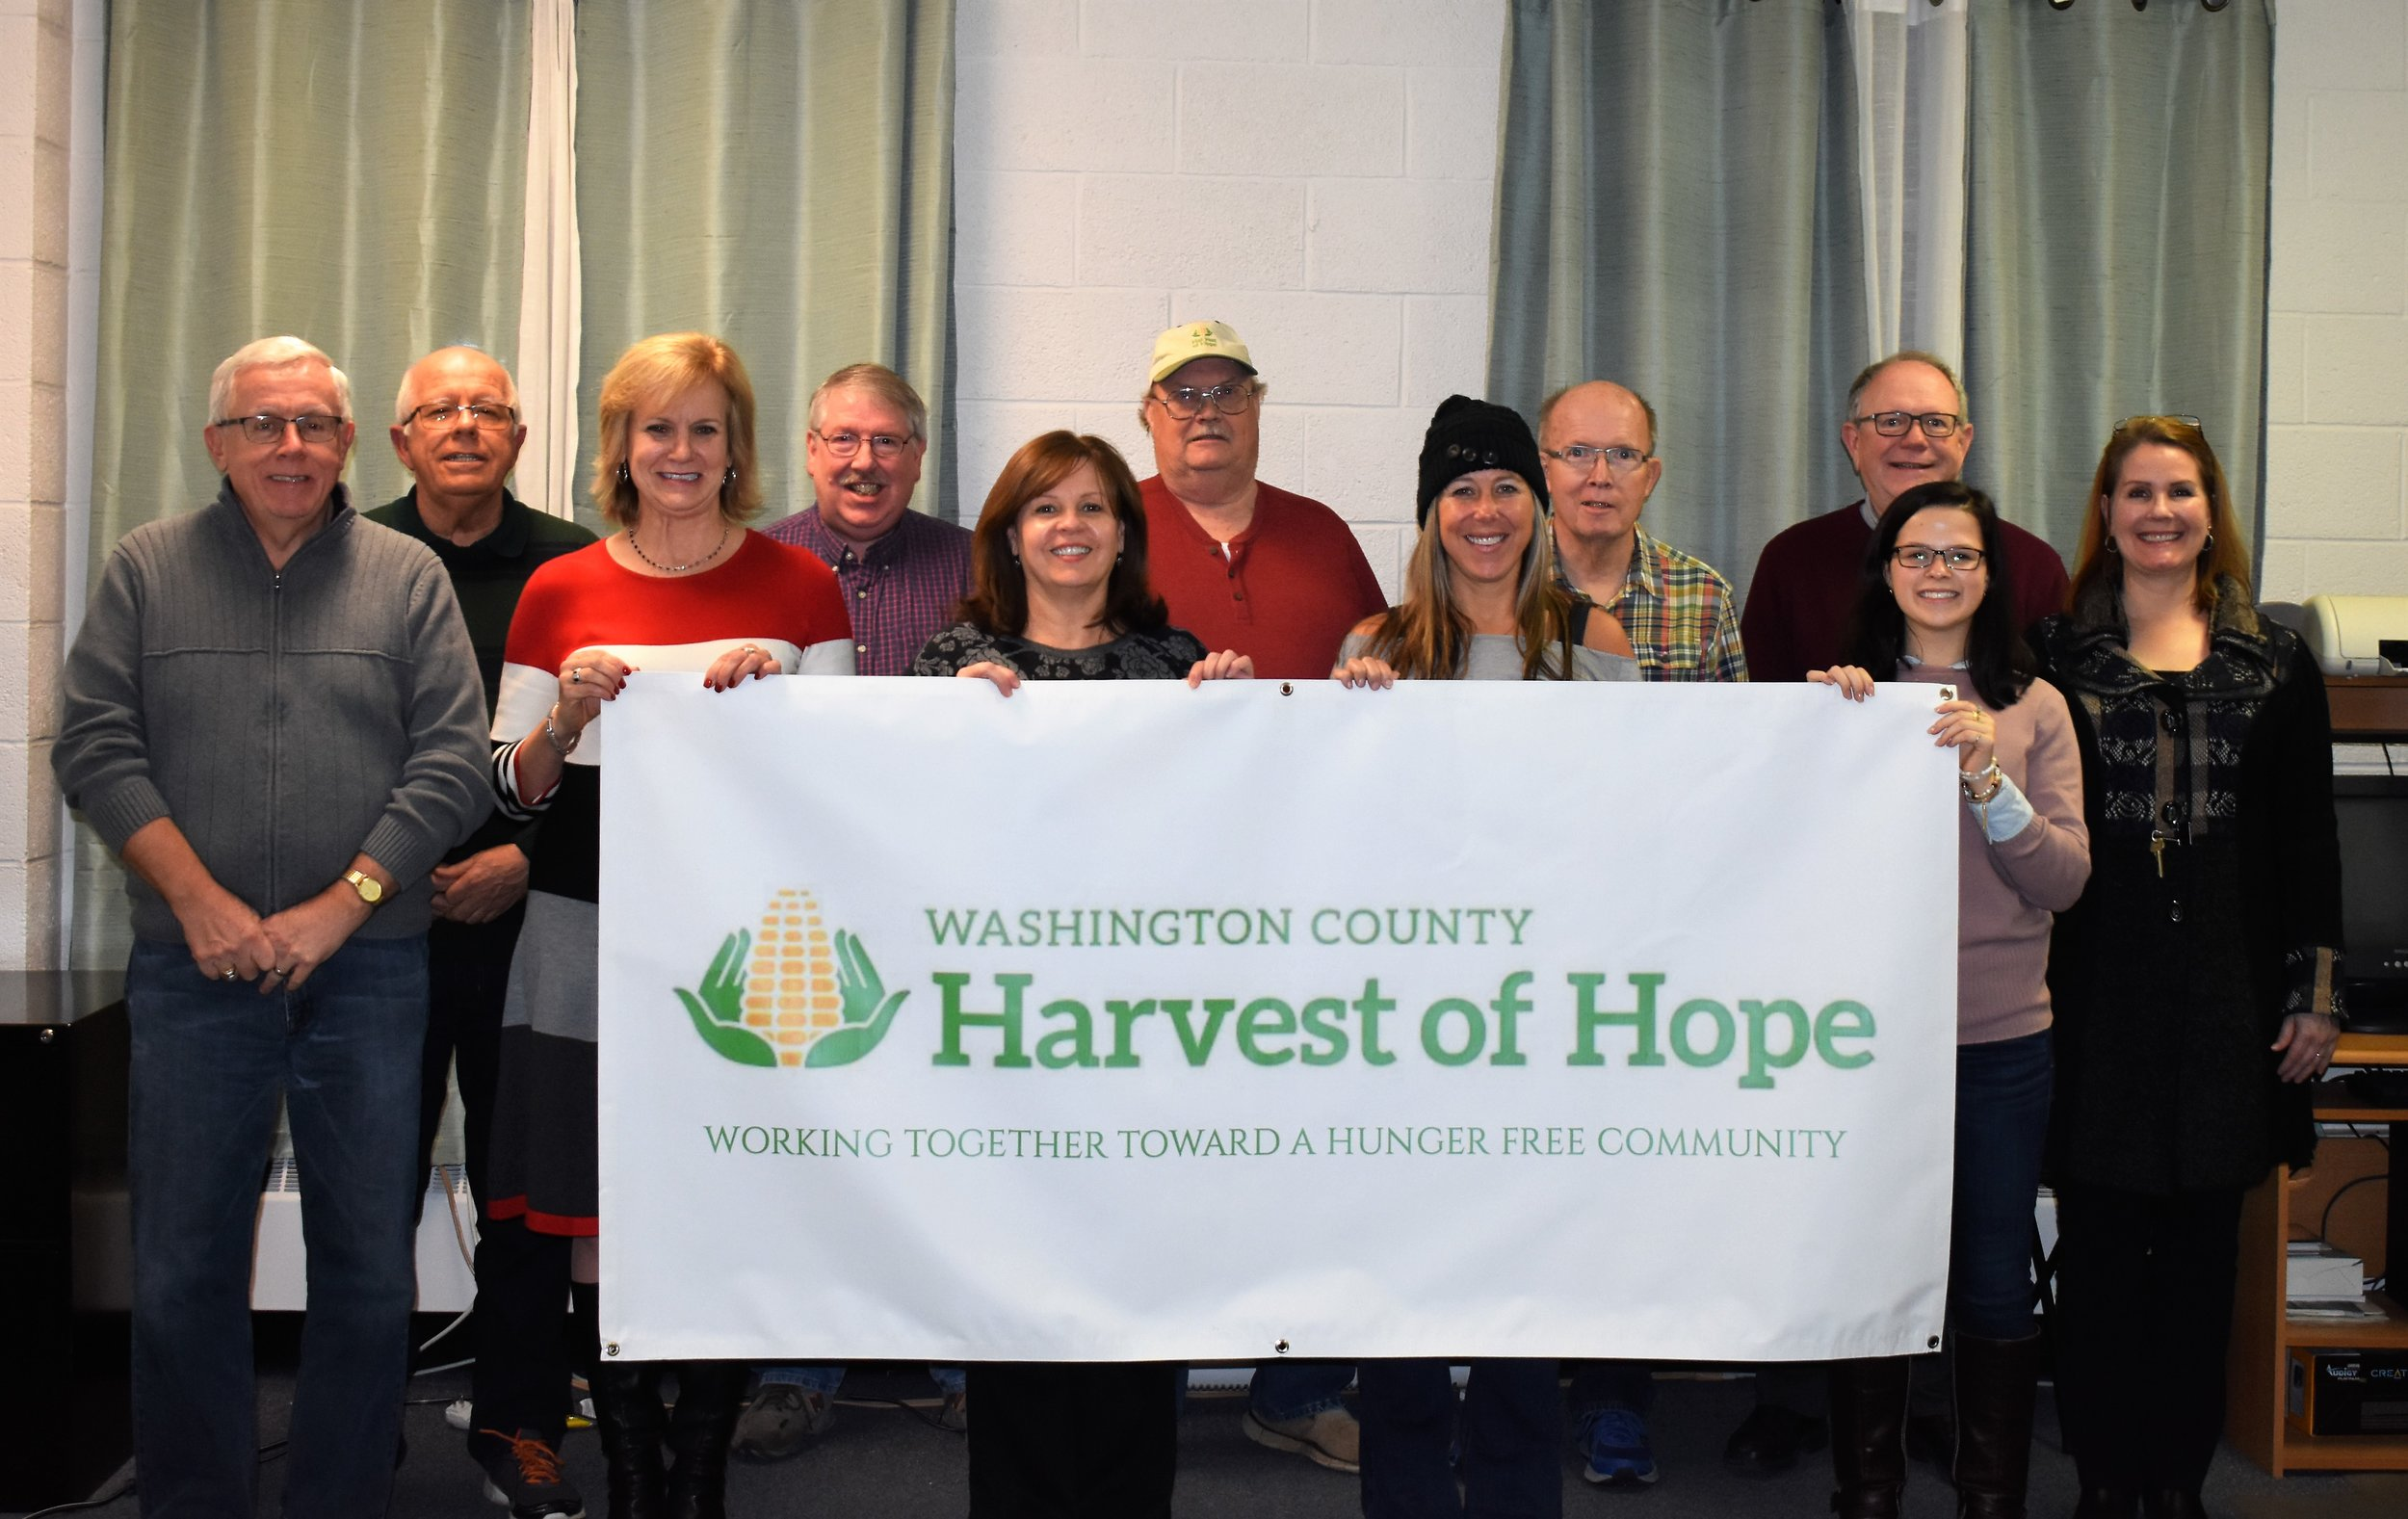 Front row left to right: Bill Standish, Michele Marra, Chris Green, Erin Combs, Abbie Leslie  Back row left to right: Steve Porter, Ron Hazelton, Dave Rogers, Ernie Gath, Mark Nutter, Anne Smith  Not pictured: Heather Kincaid, Kim Betz, Doug Beymer, Judy Gilham, Jim Lopreste